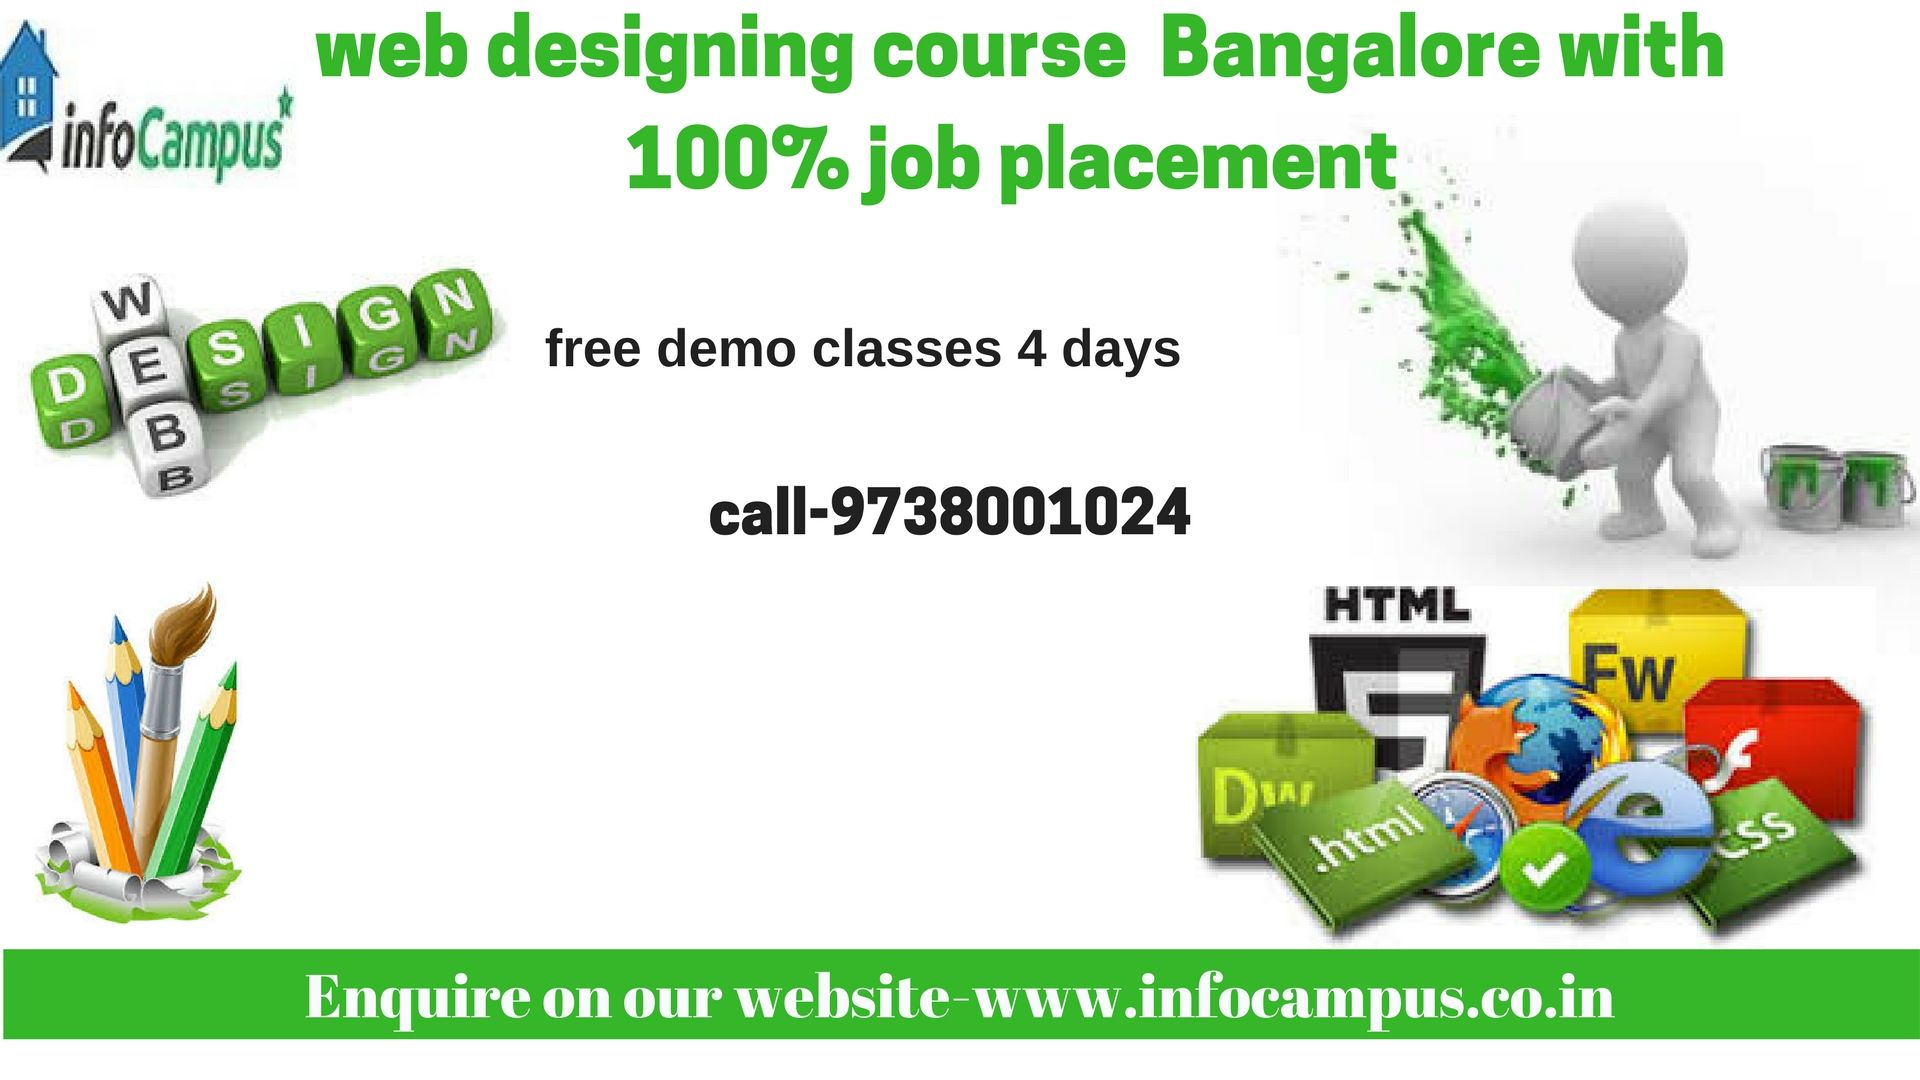 Infocampus Provides Real Time And Placement Focused Web Designing Course In Bangalore We Have Designed Our Web With Images Web Design Jobs Web Design Training Web Design